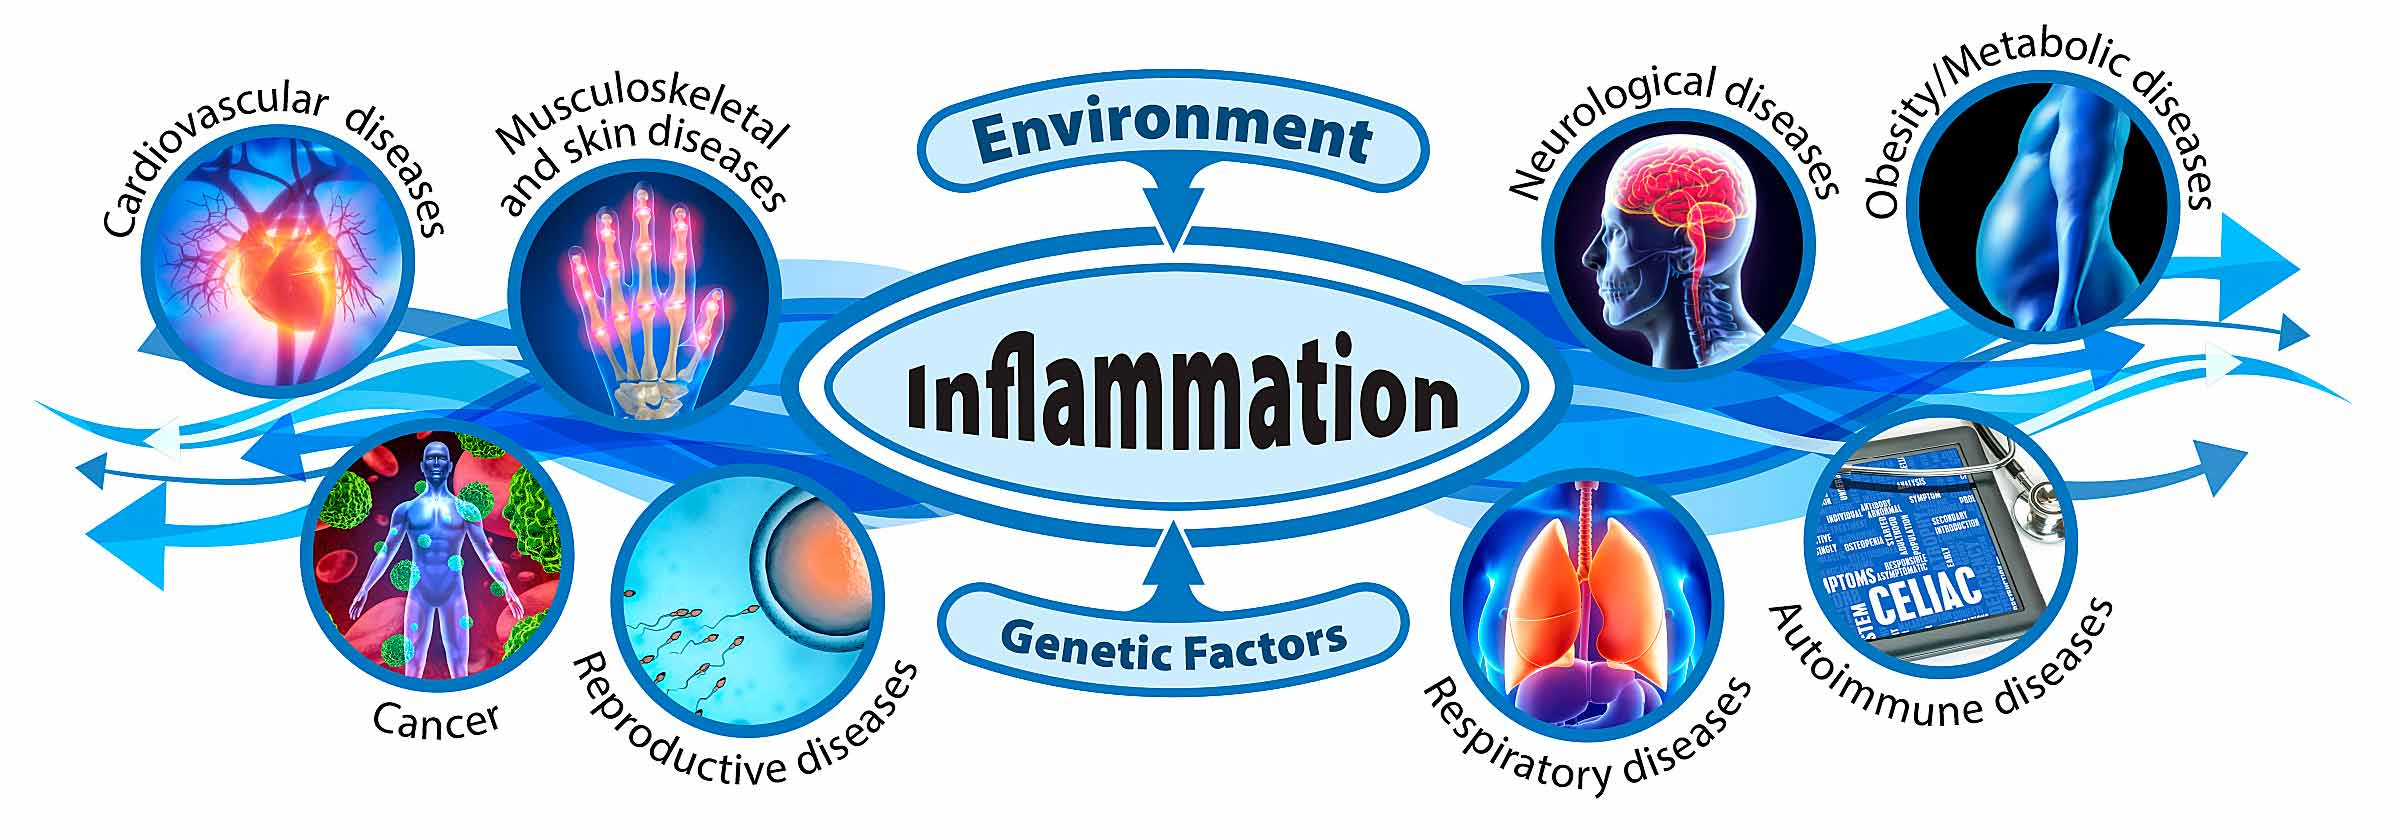 graphical representation of environmental and genetic factors contributing to various inflammatory states